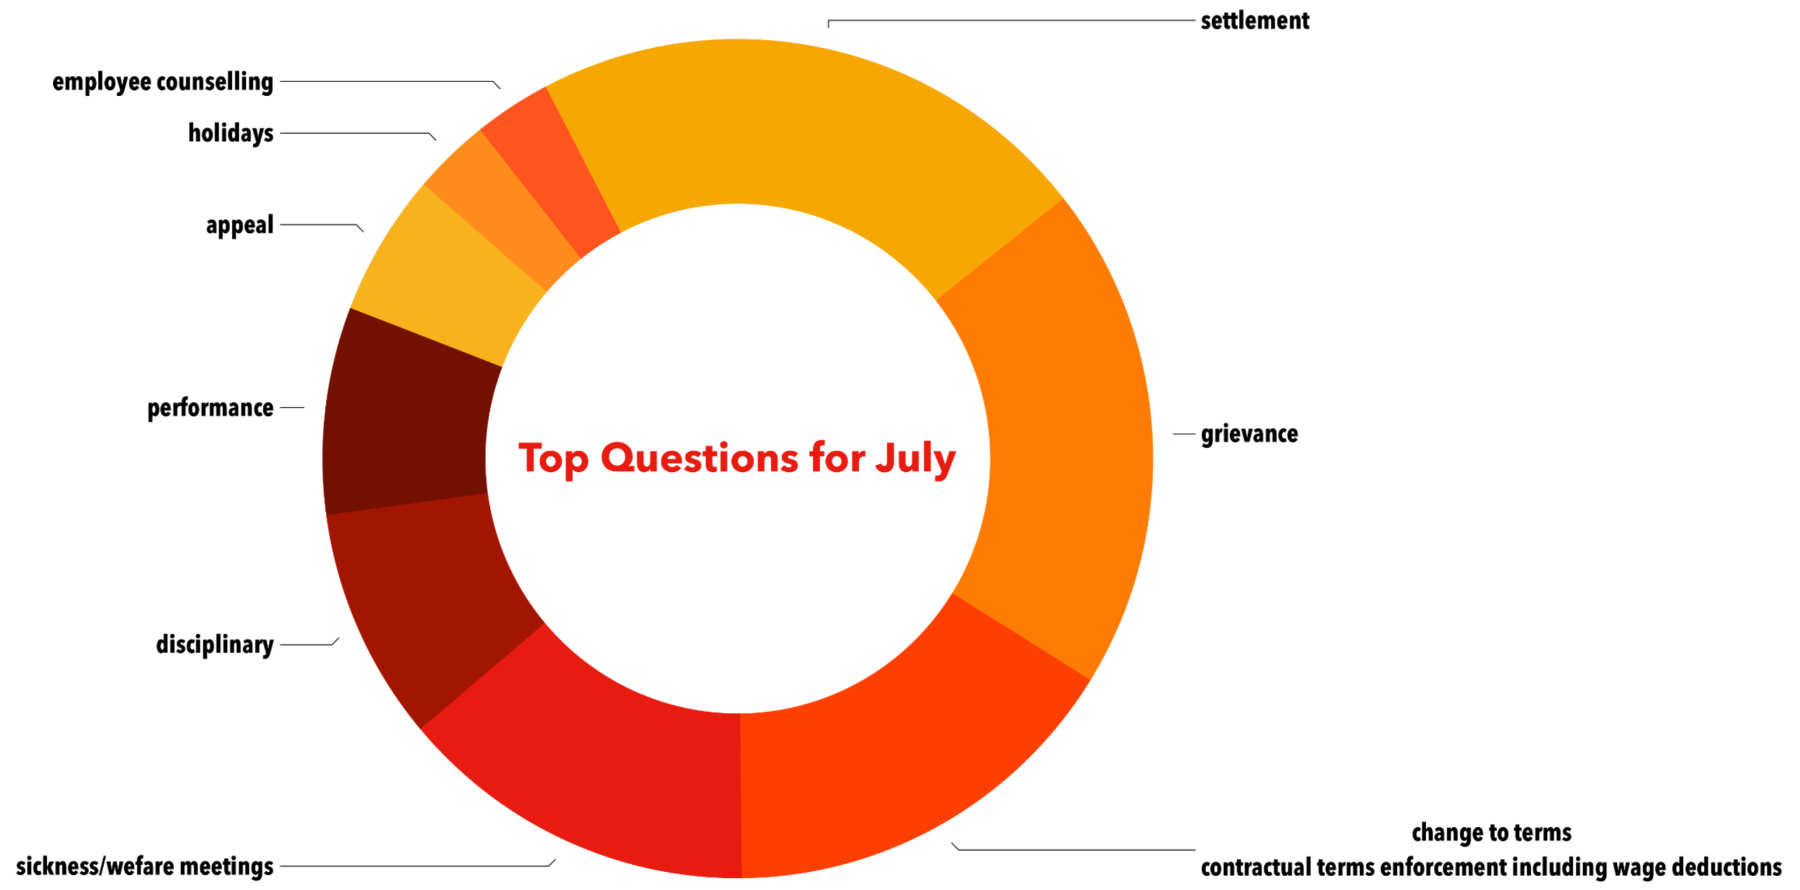 Image showing the Top Questions for May 2019